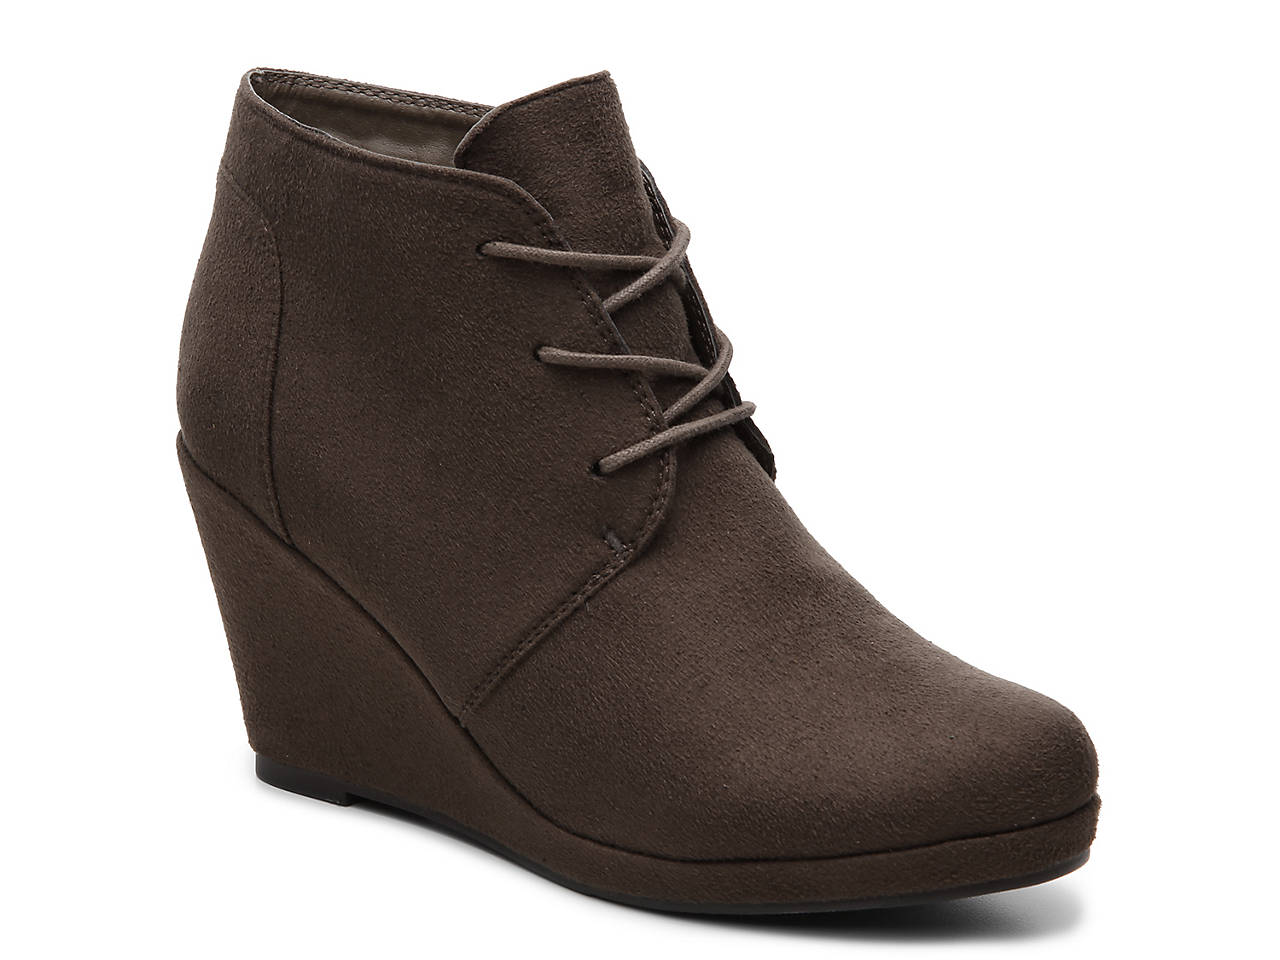 28500af29e77d Journee Collection Enter Wedge Bootie Women s Shoes